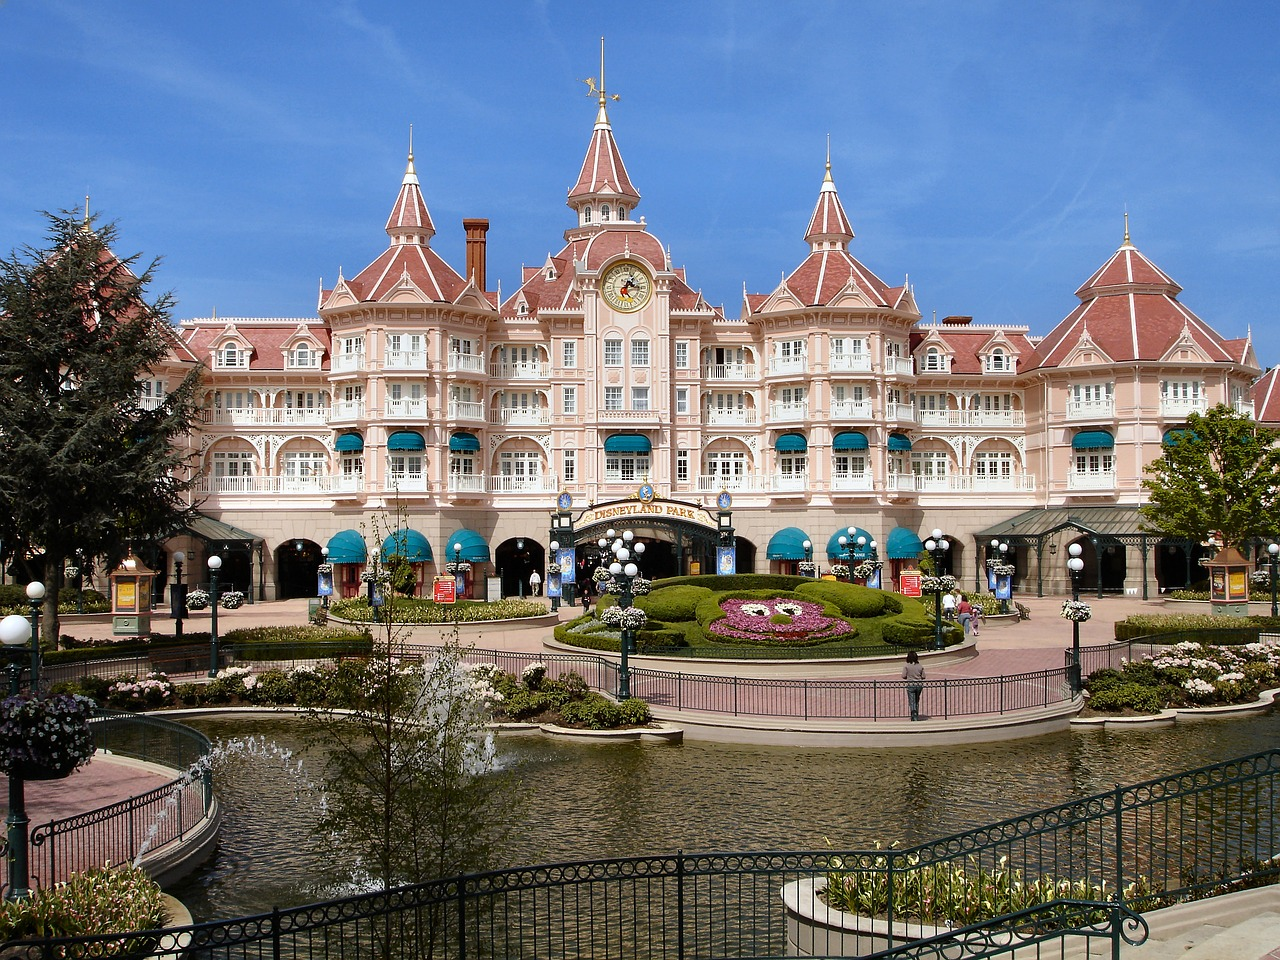 Entrance to Disneyland Paris